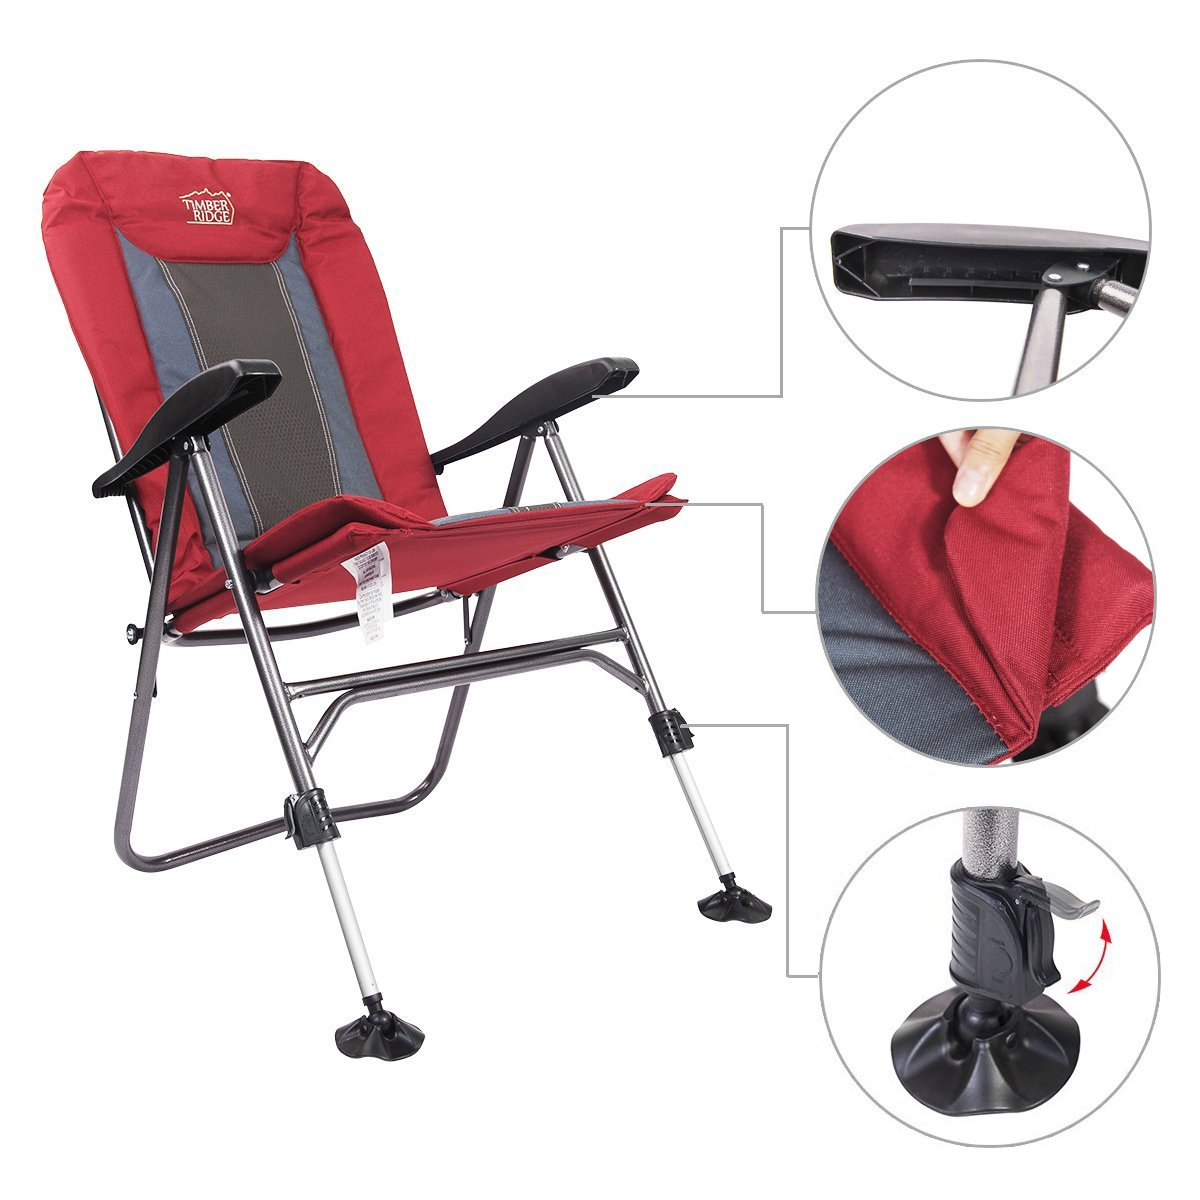 Timber Ridge Camping Folding Chair With Adjustable Back